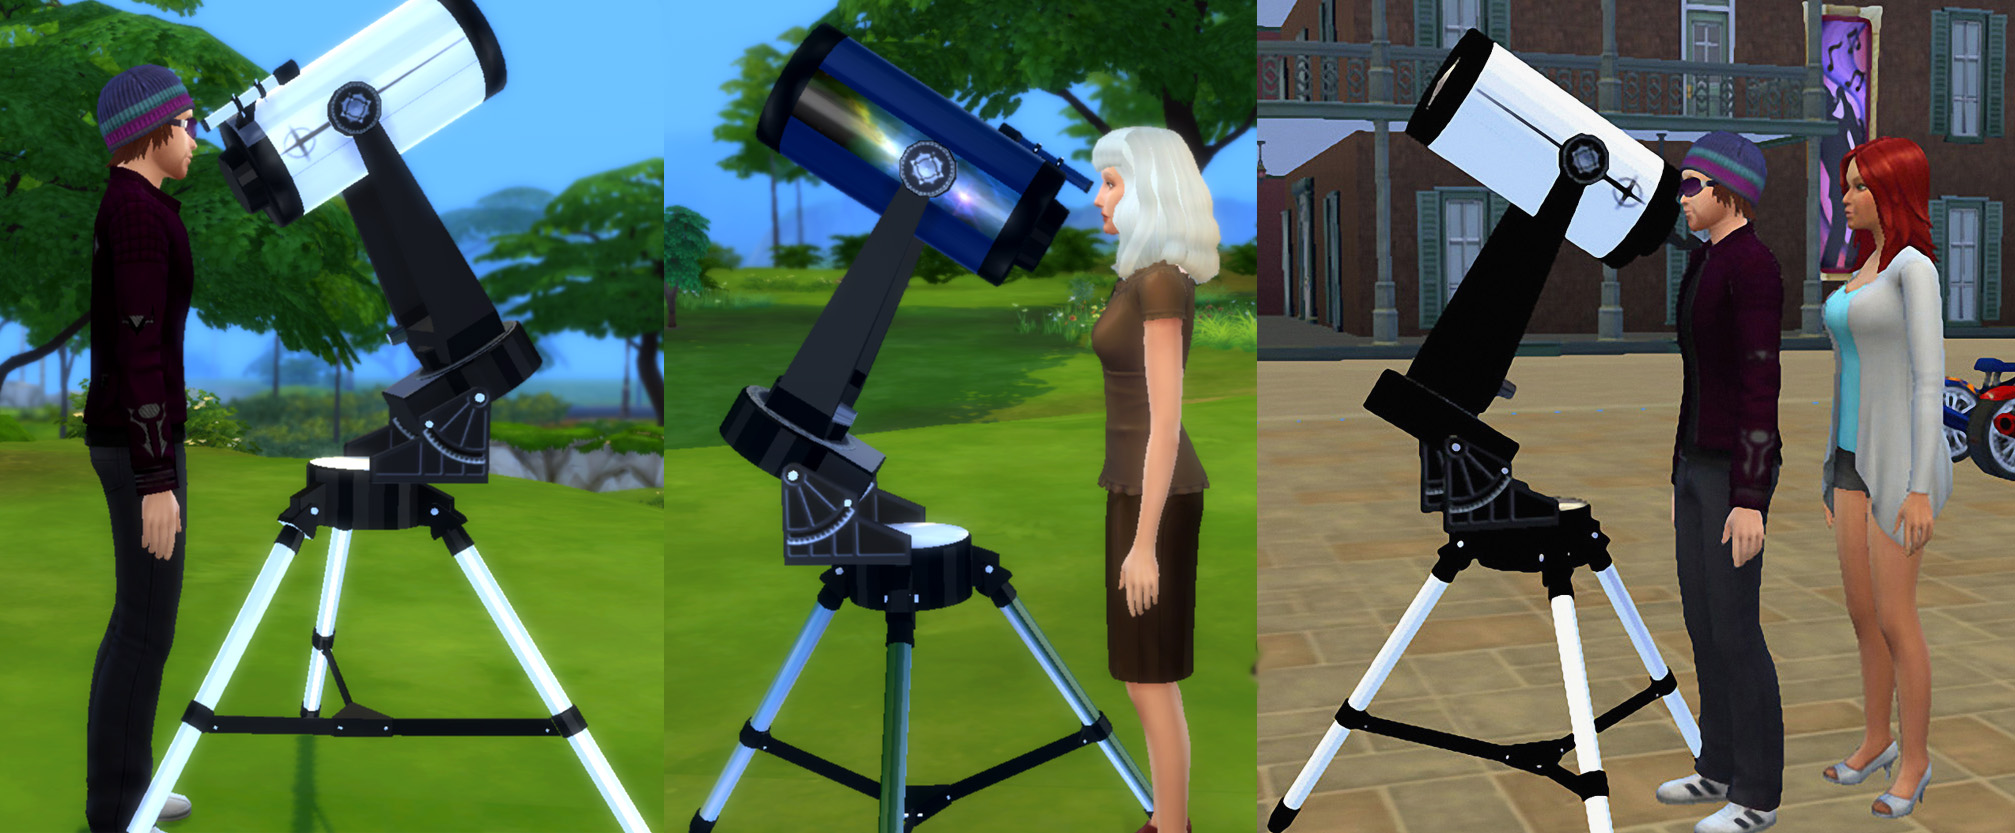 Telescope as Observatory Alternative by Esmeralda